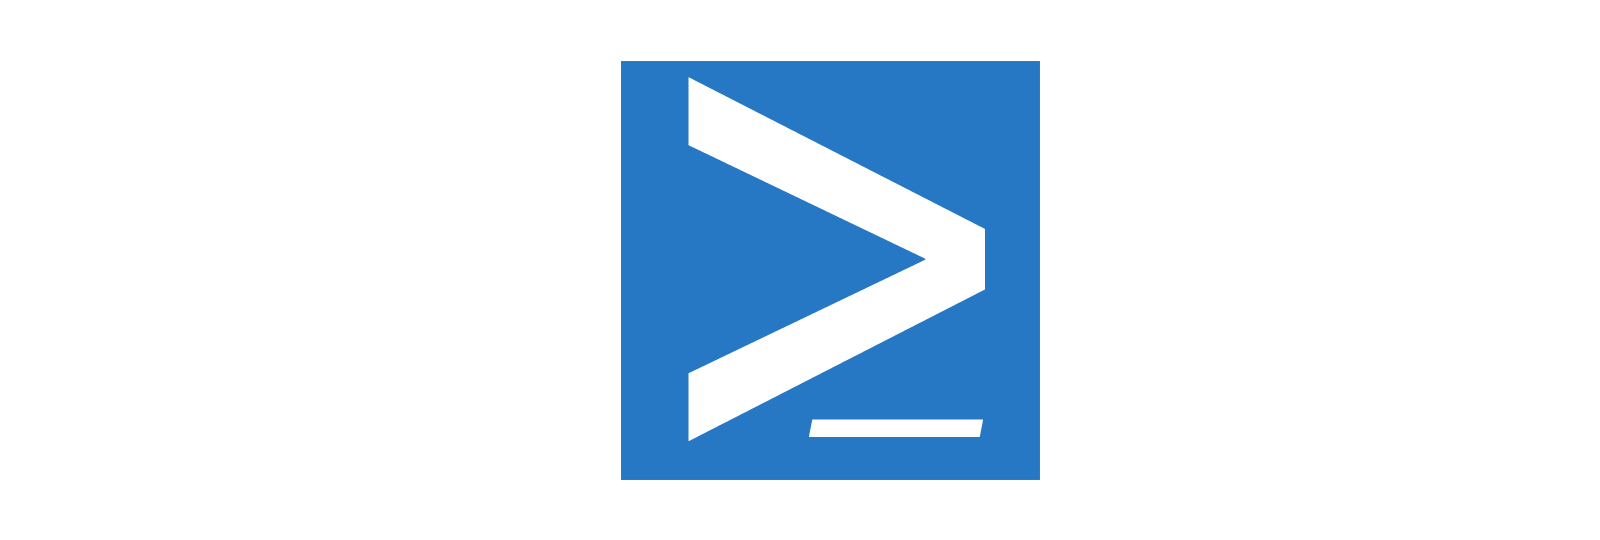 Install Web Platform Installer and Azure SDK using PowerShell DSC